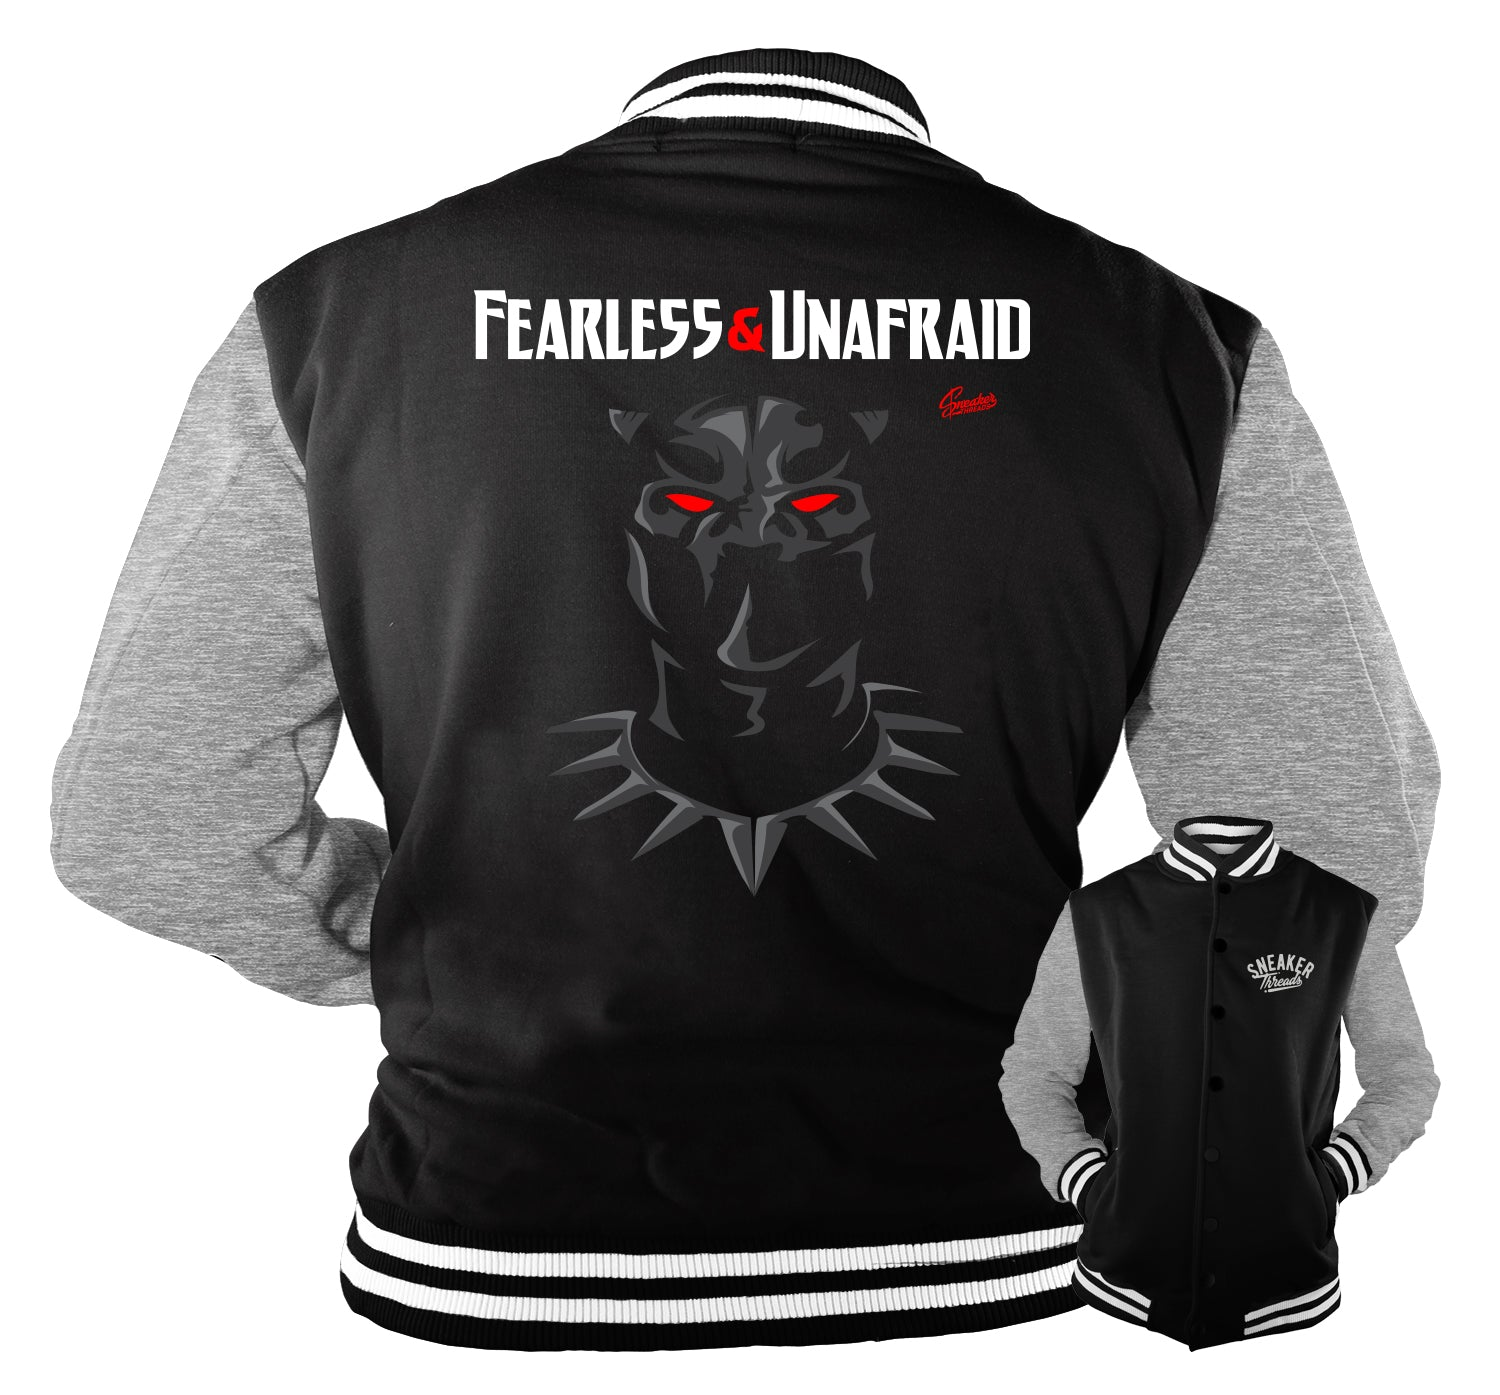 Jordan 4 Black Cat Fearless Jacket